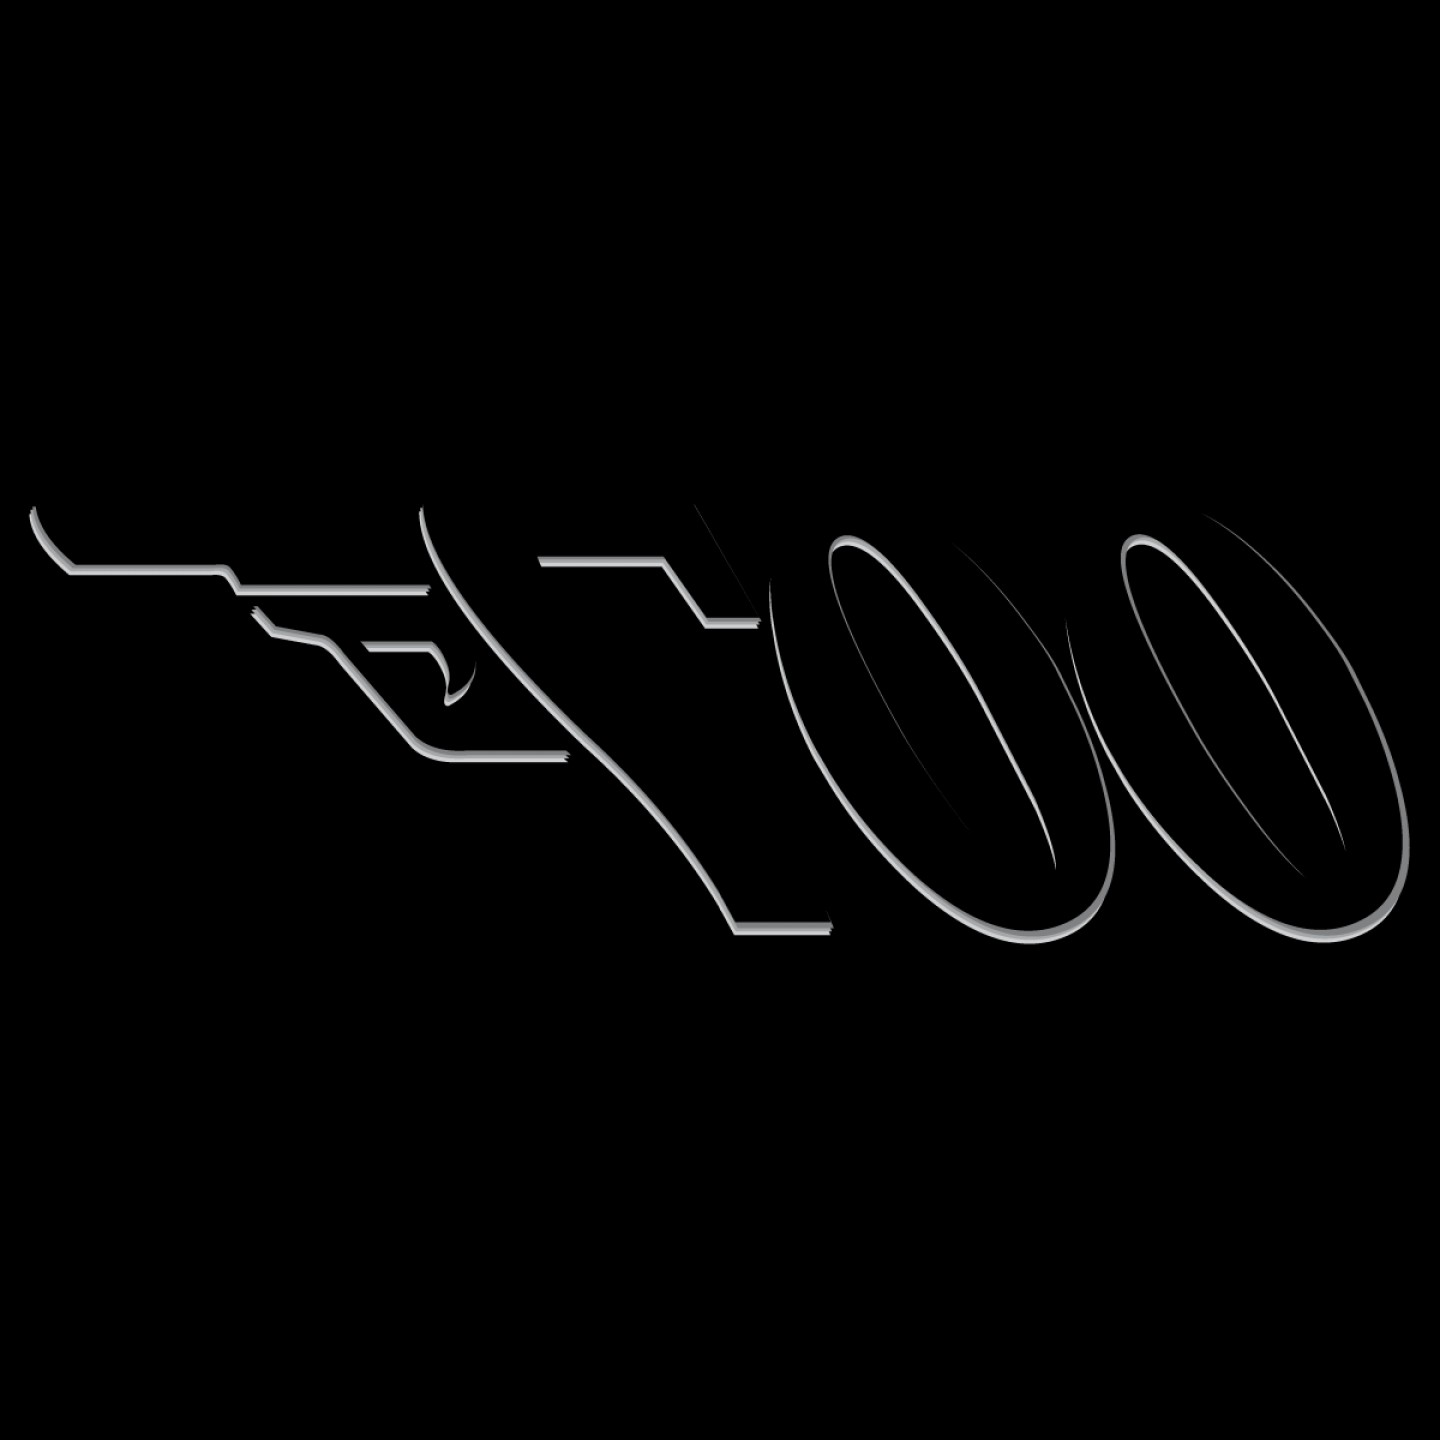 James Bond Silhouette Vector: James Bond Gun Logo Vector